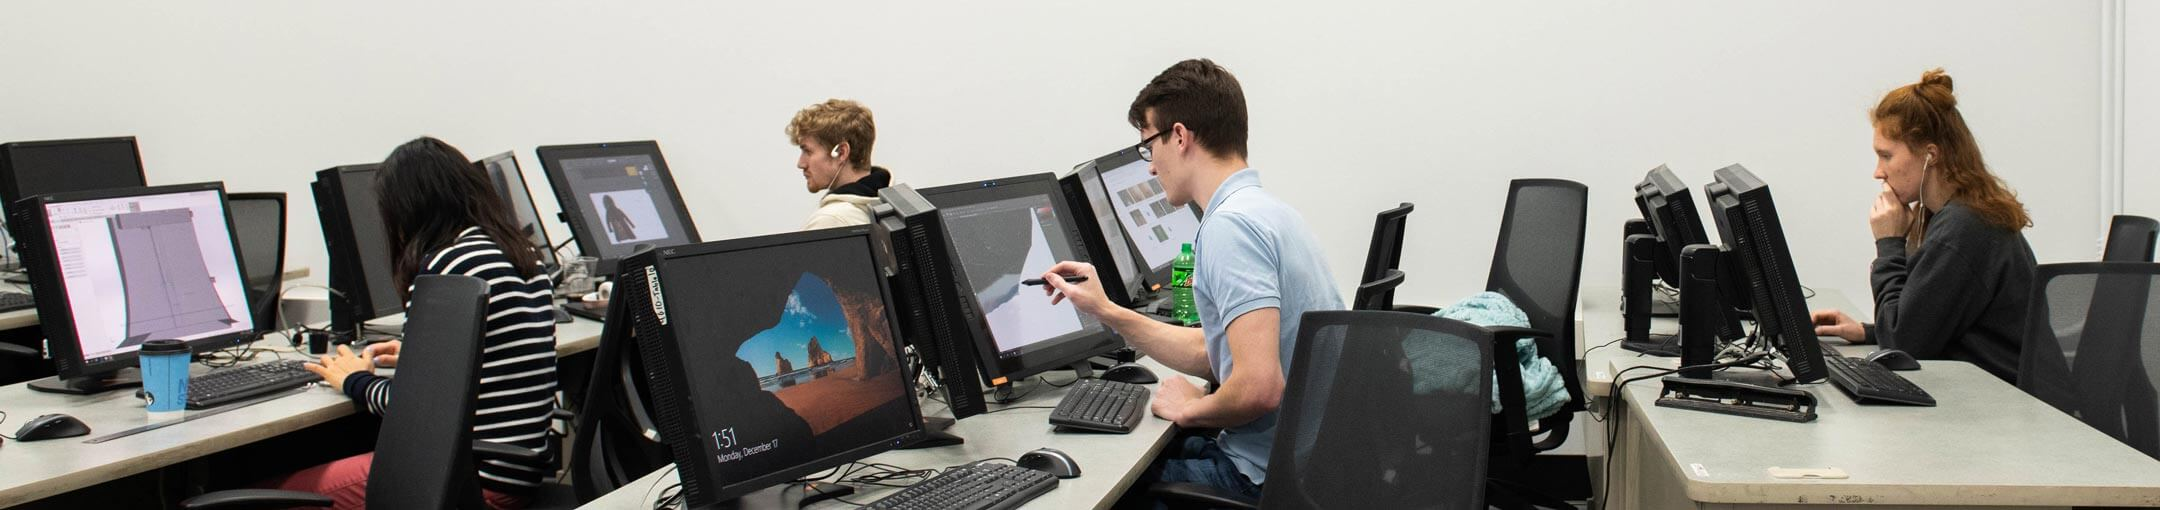 Students in computer lab using various design programs.